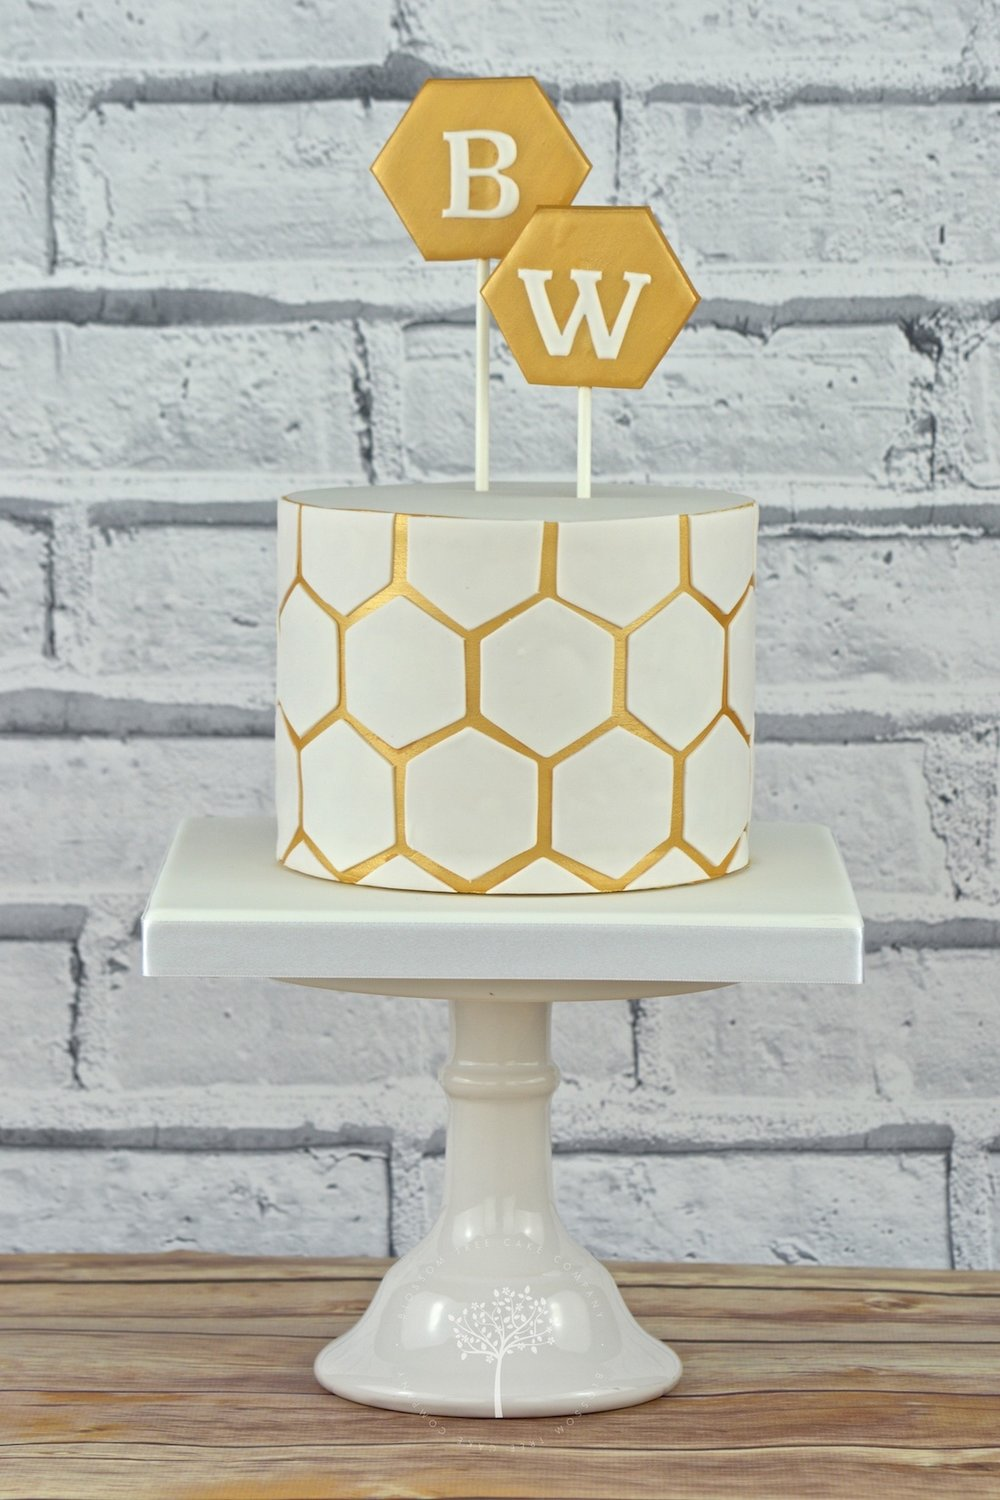 Honeycomb celebration cake by Blossom Tree Cake Company Harrogate North Yorkshire.jpg